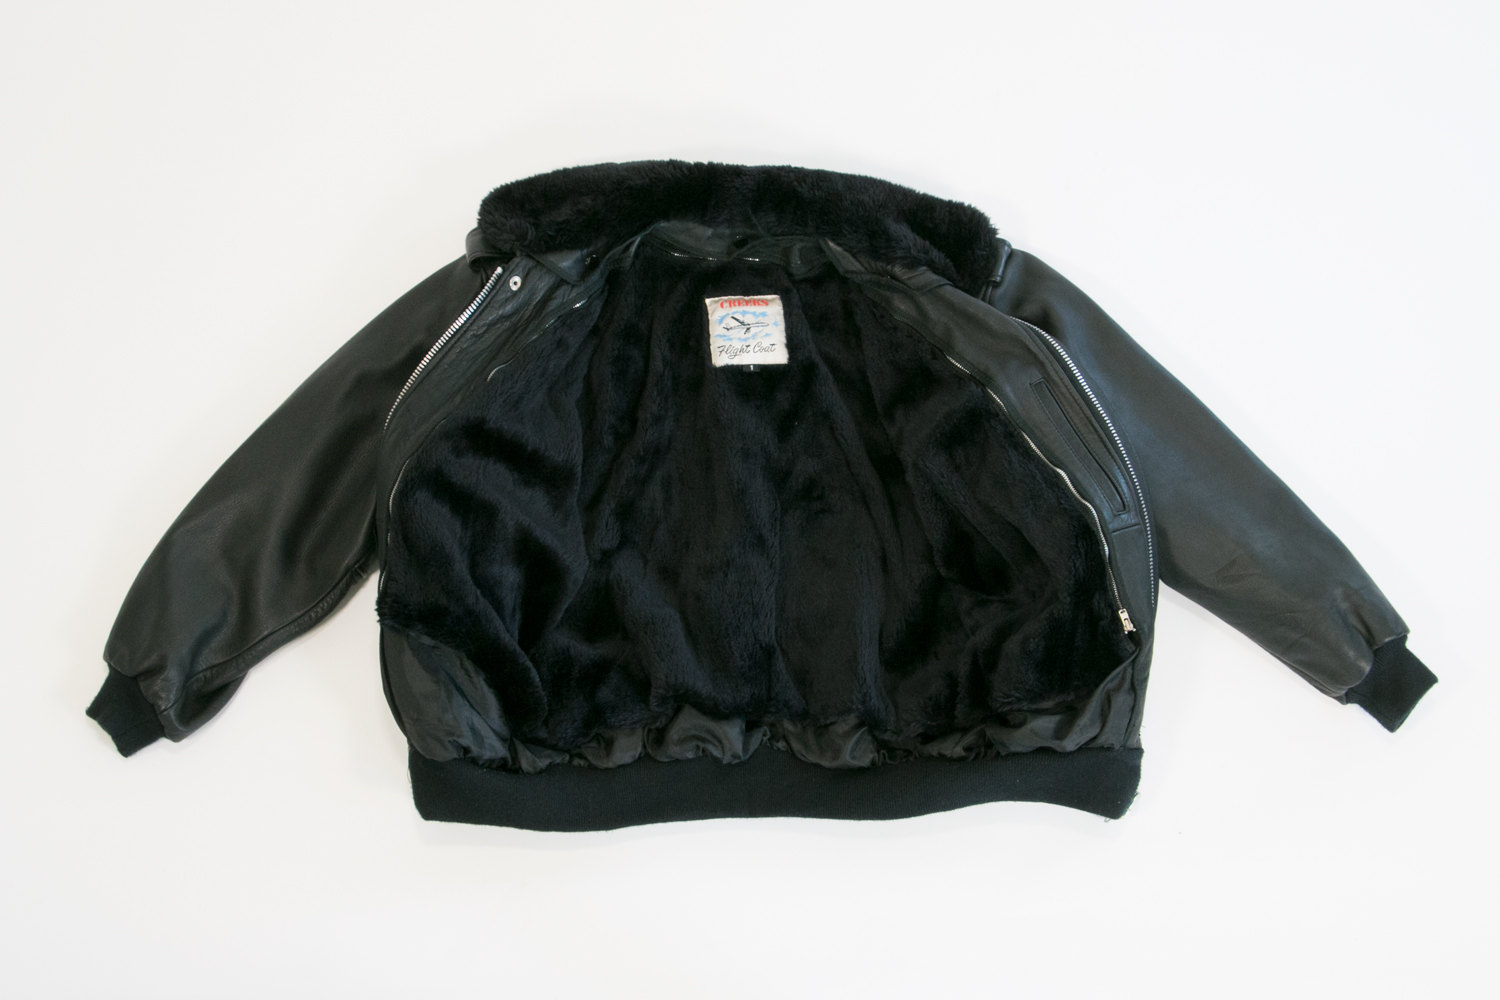 Vintage 1960's Fur Collared Leather Bomber Jacket w Zippered Fur Lining Layer // Black // Hipster, Rocker, Biker, Motorcycle, Cafe Racer